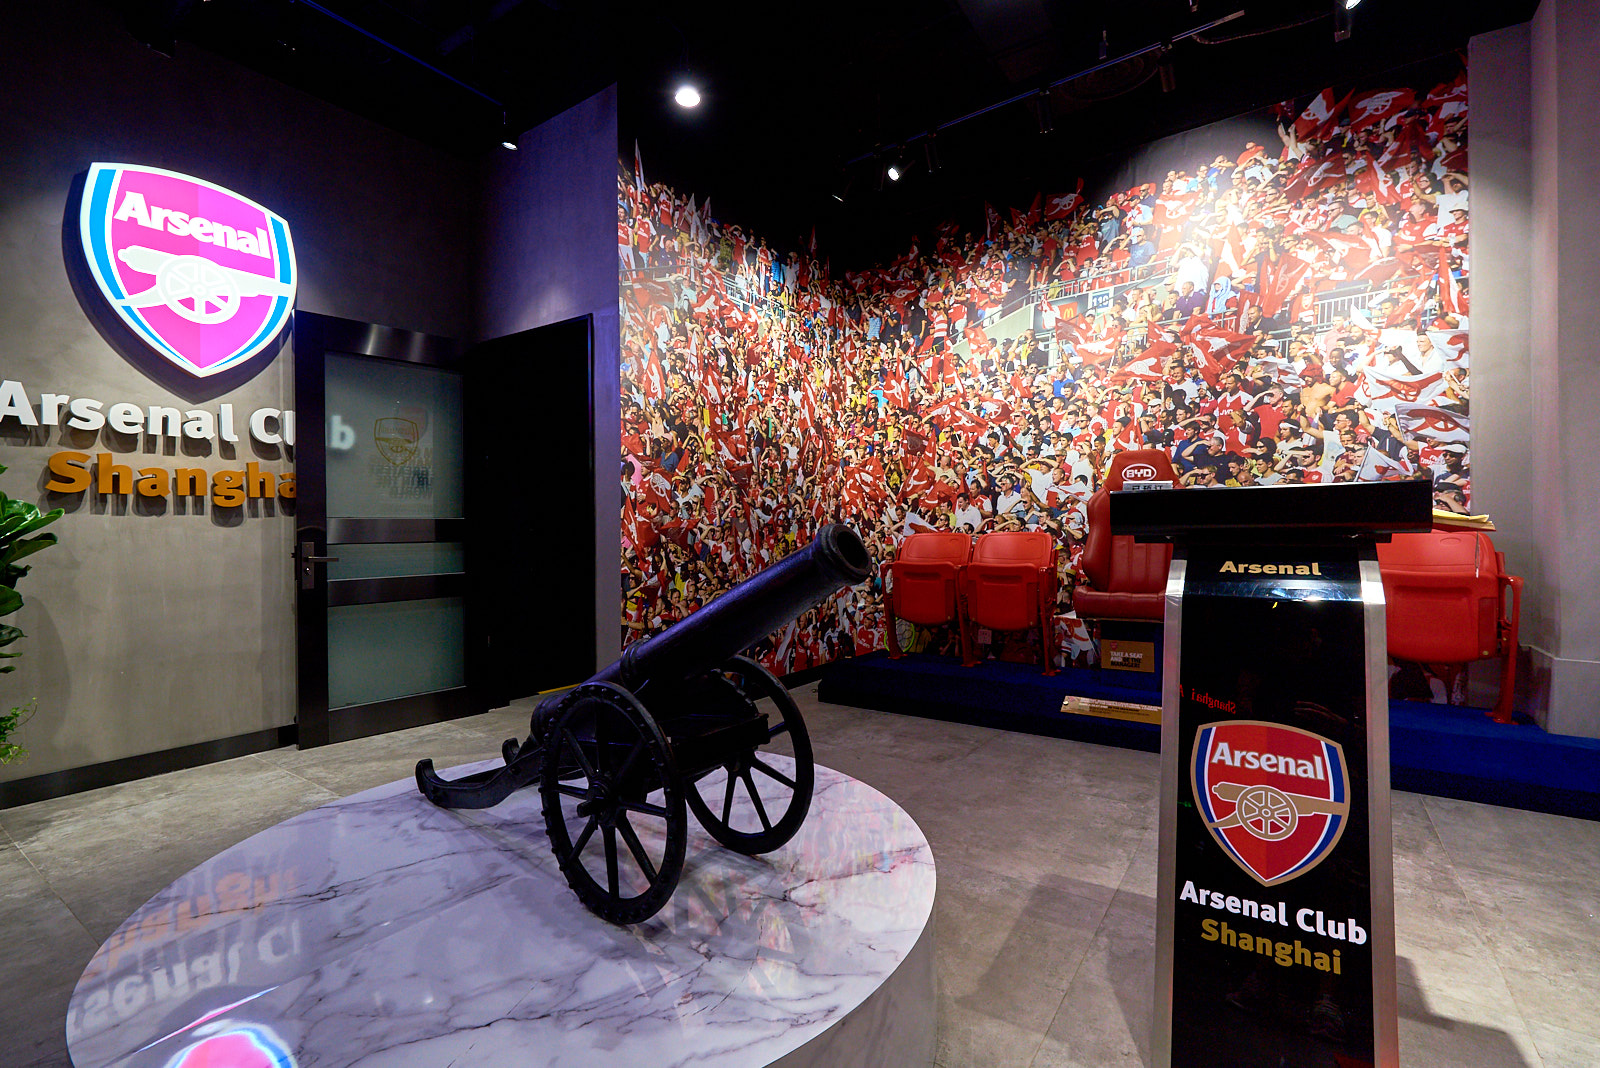 Arsenal Club Shanghai Shanghai